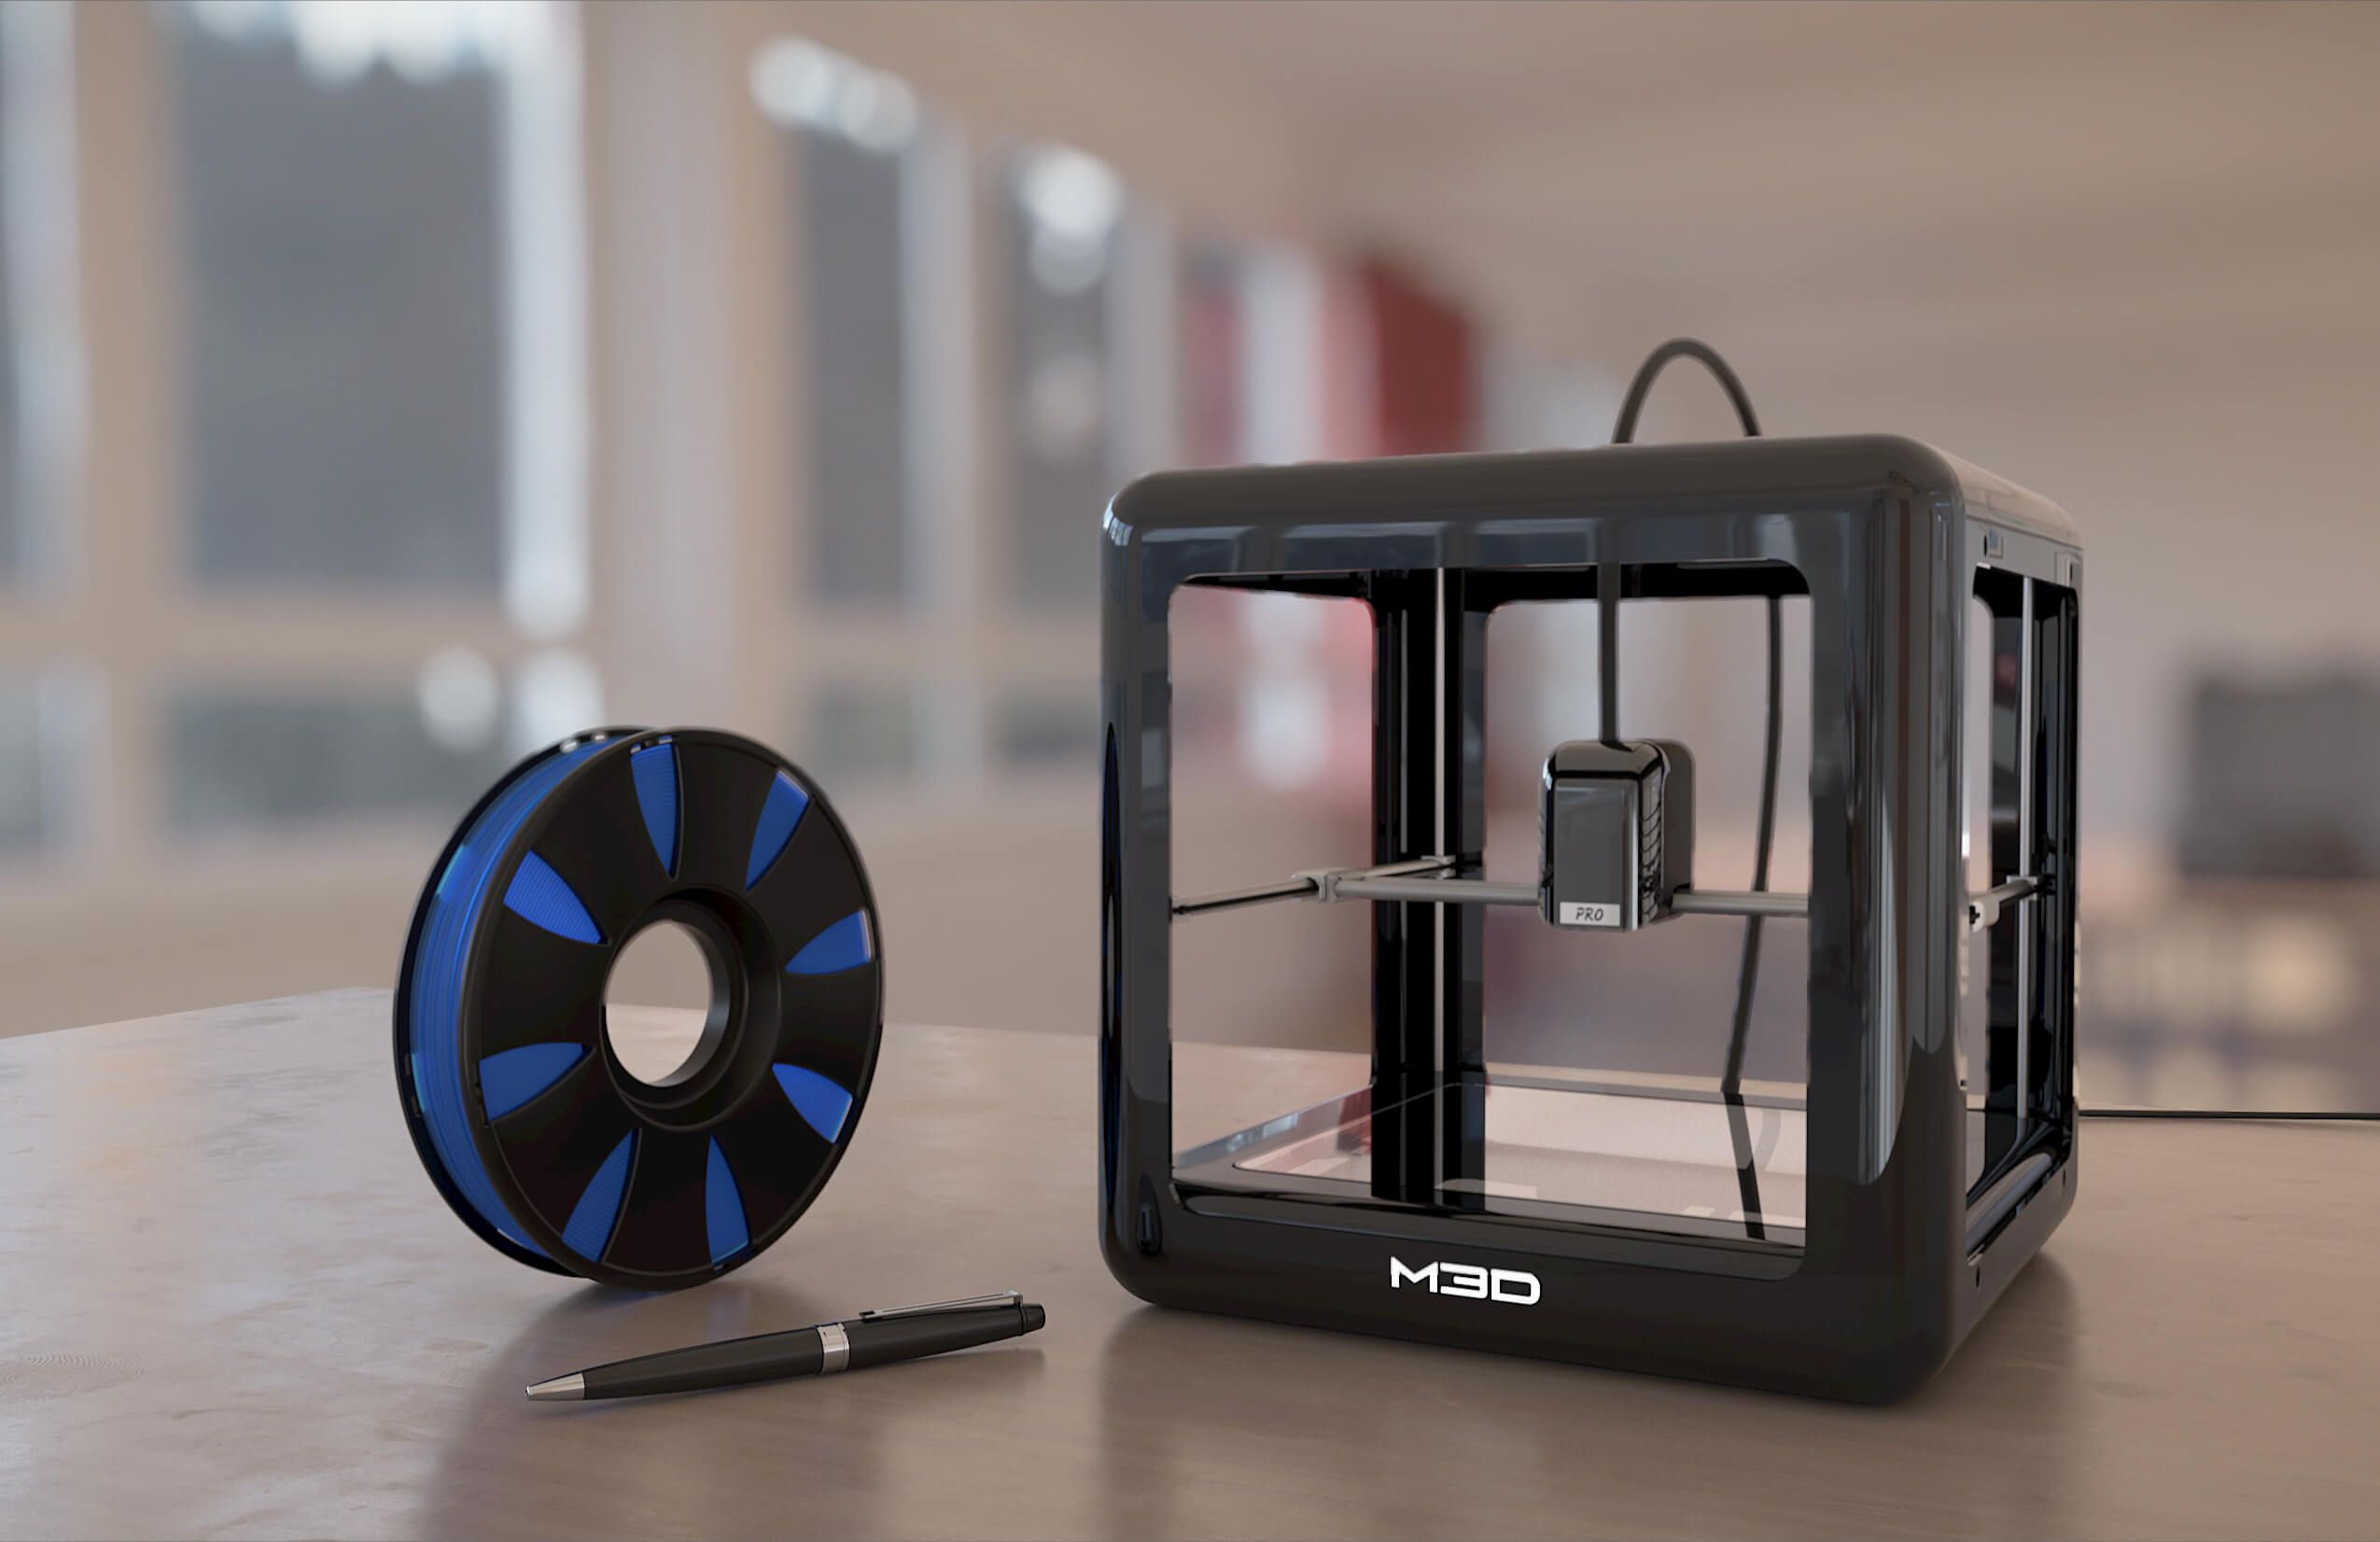 Introducing the M3D Pro Available for preorder August